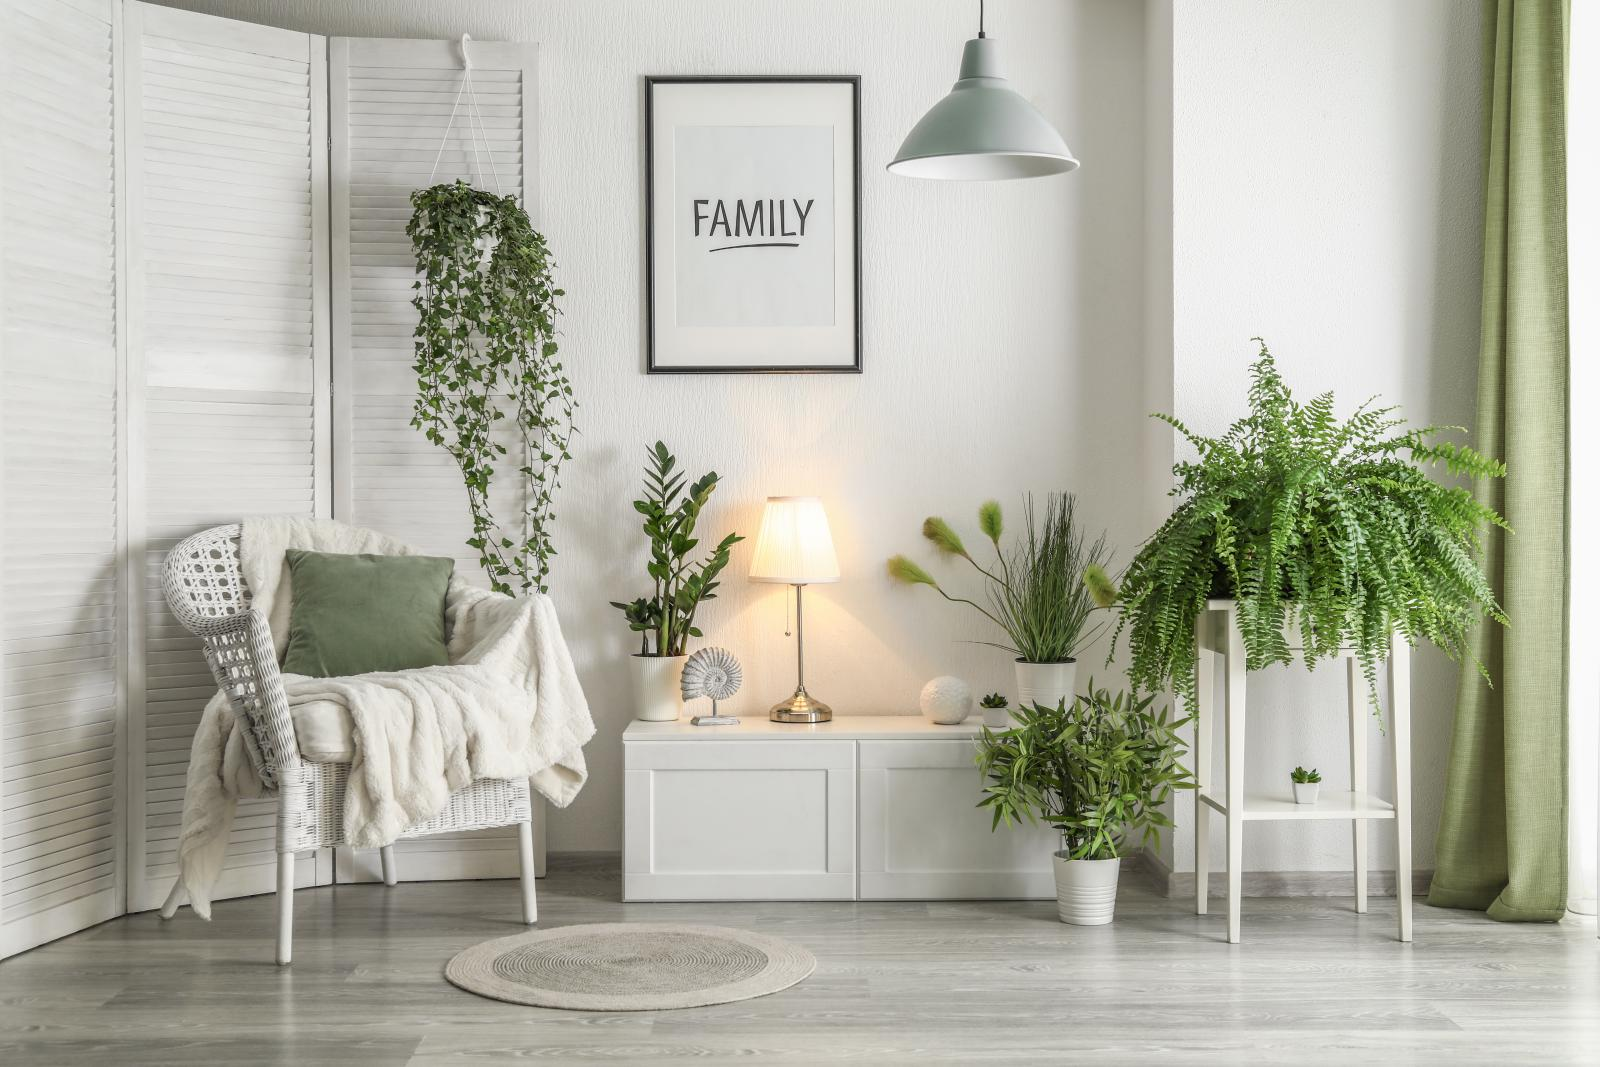 modern room with plants